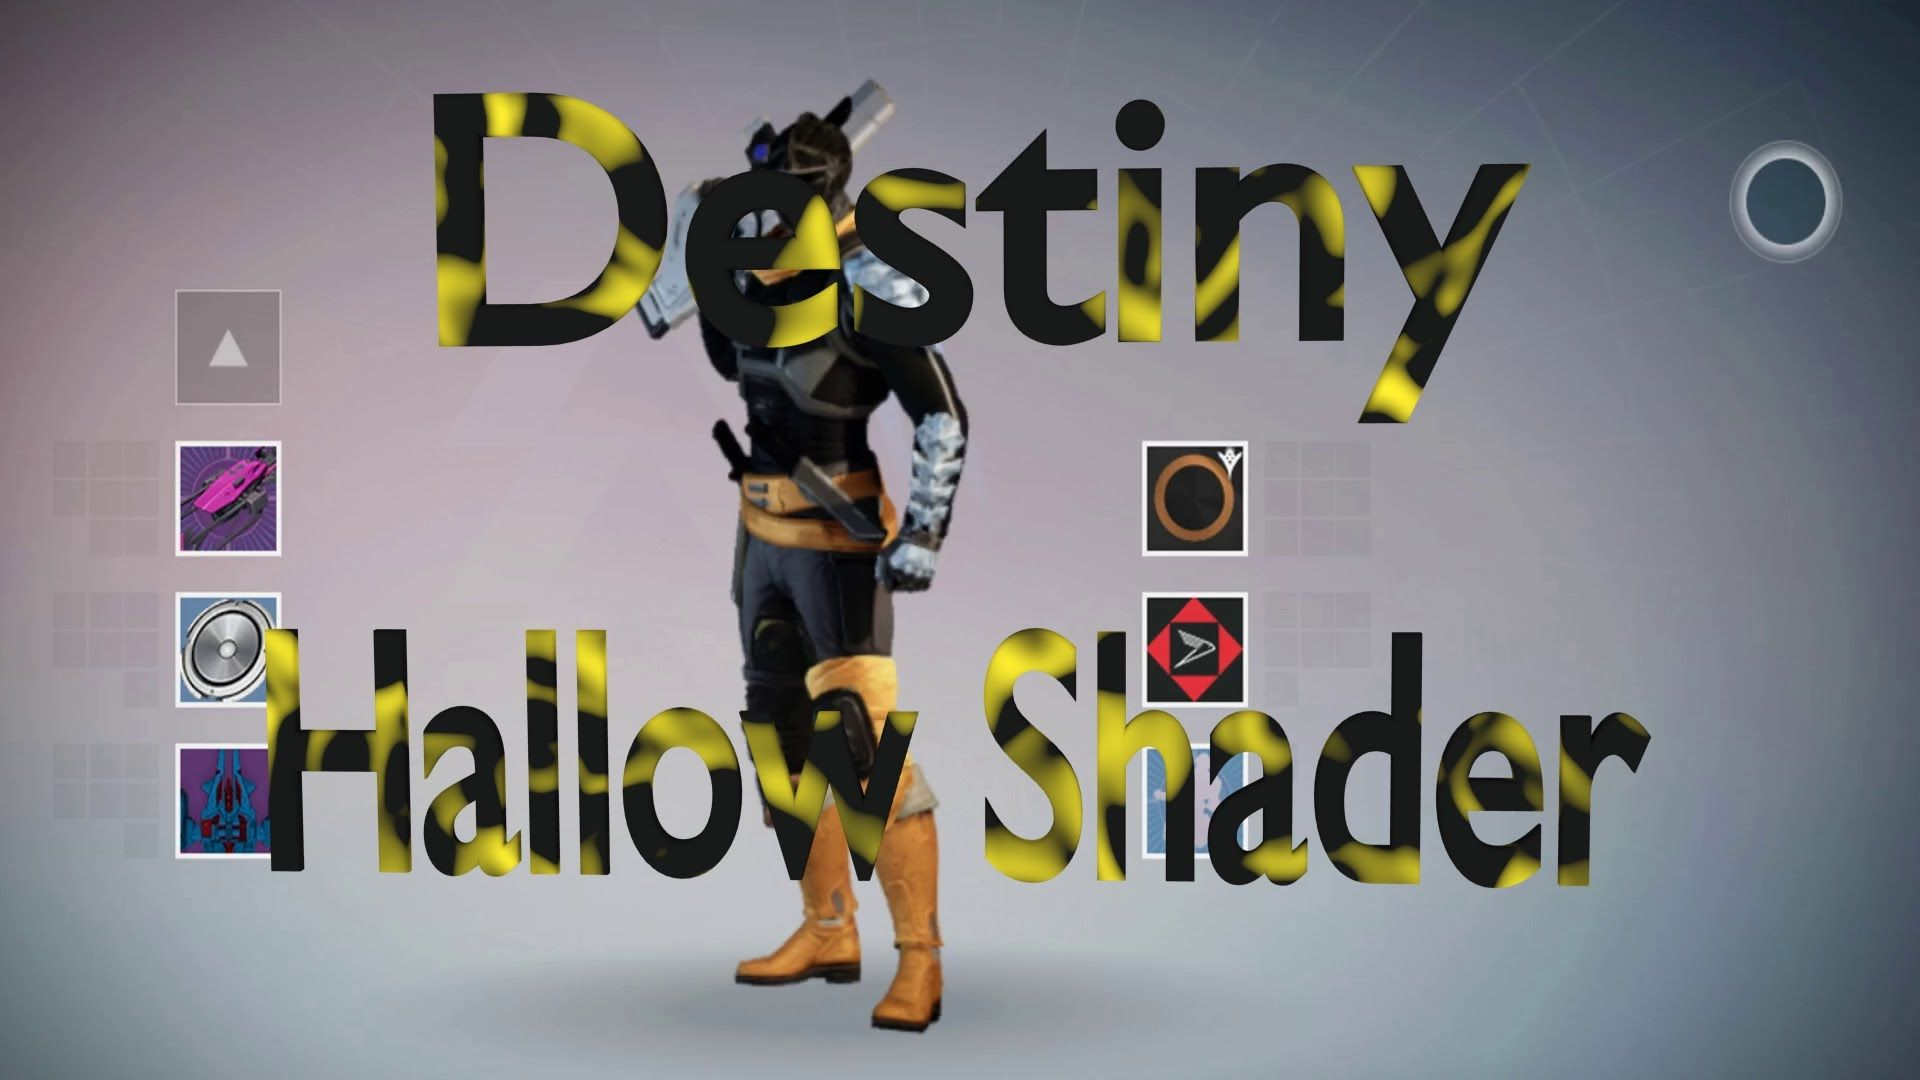 Hallow Shader, Destiny | Games | Destiny, Home decor, Games